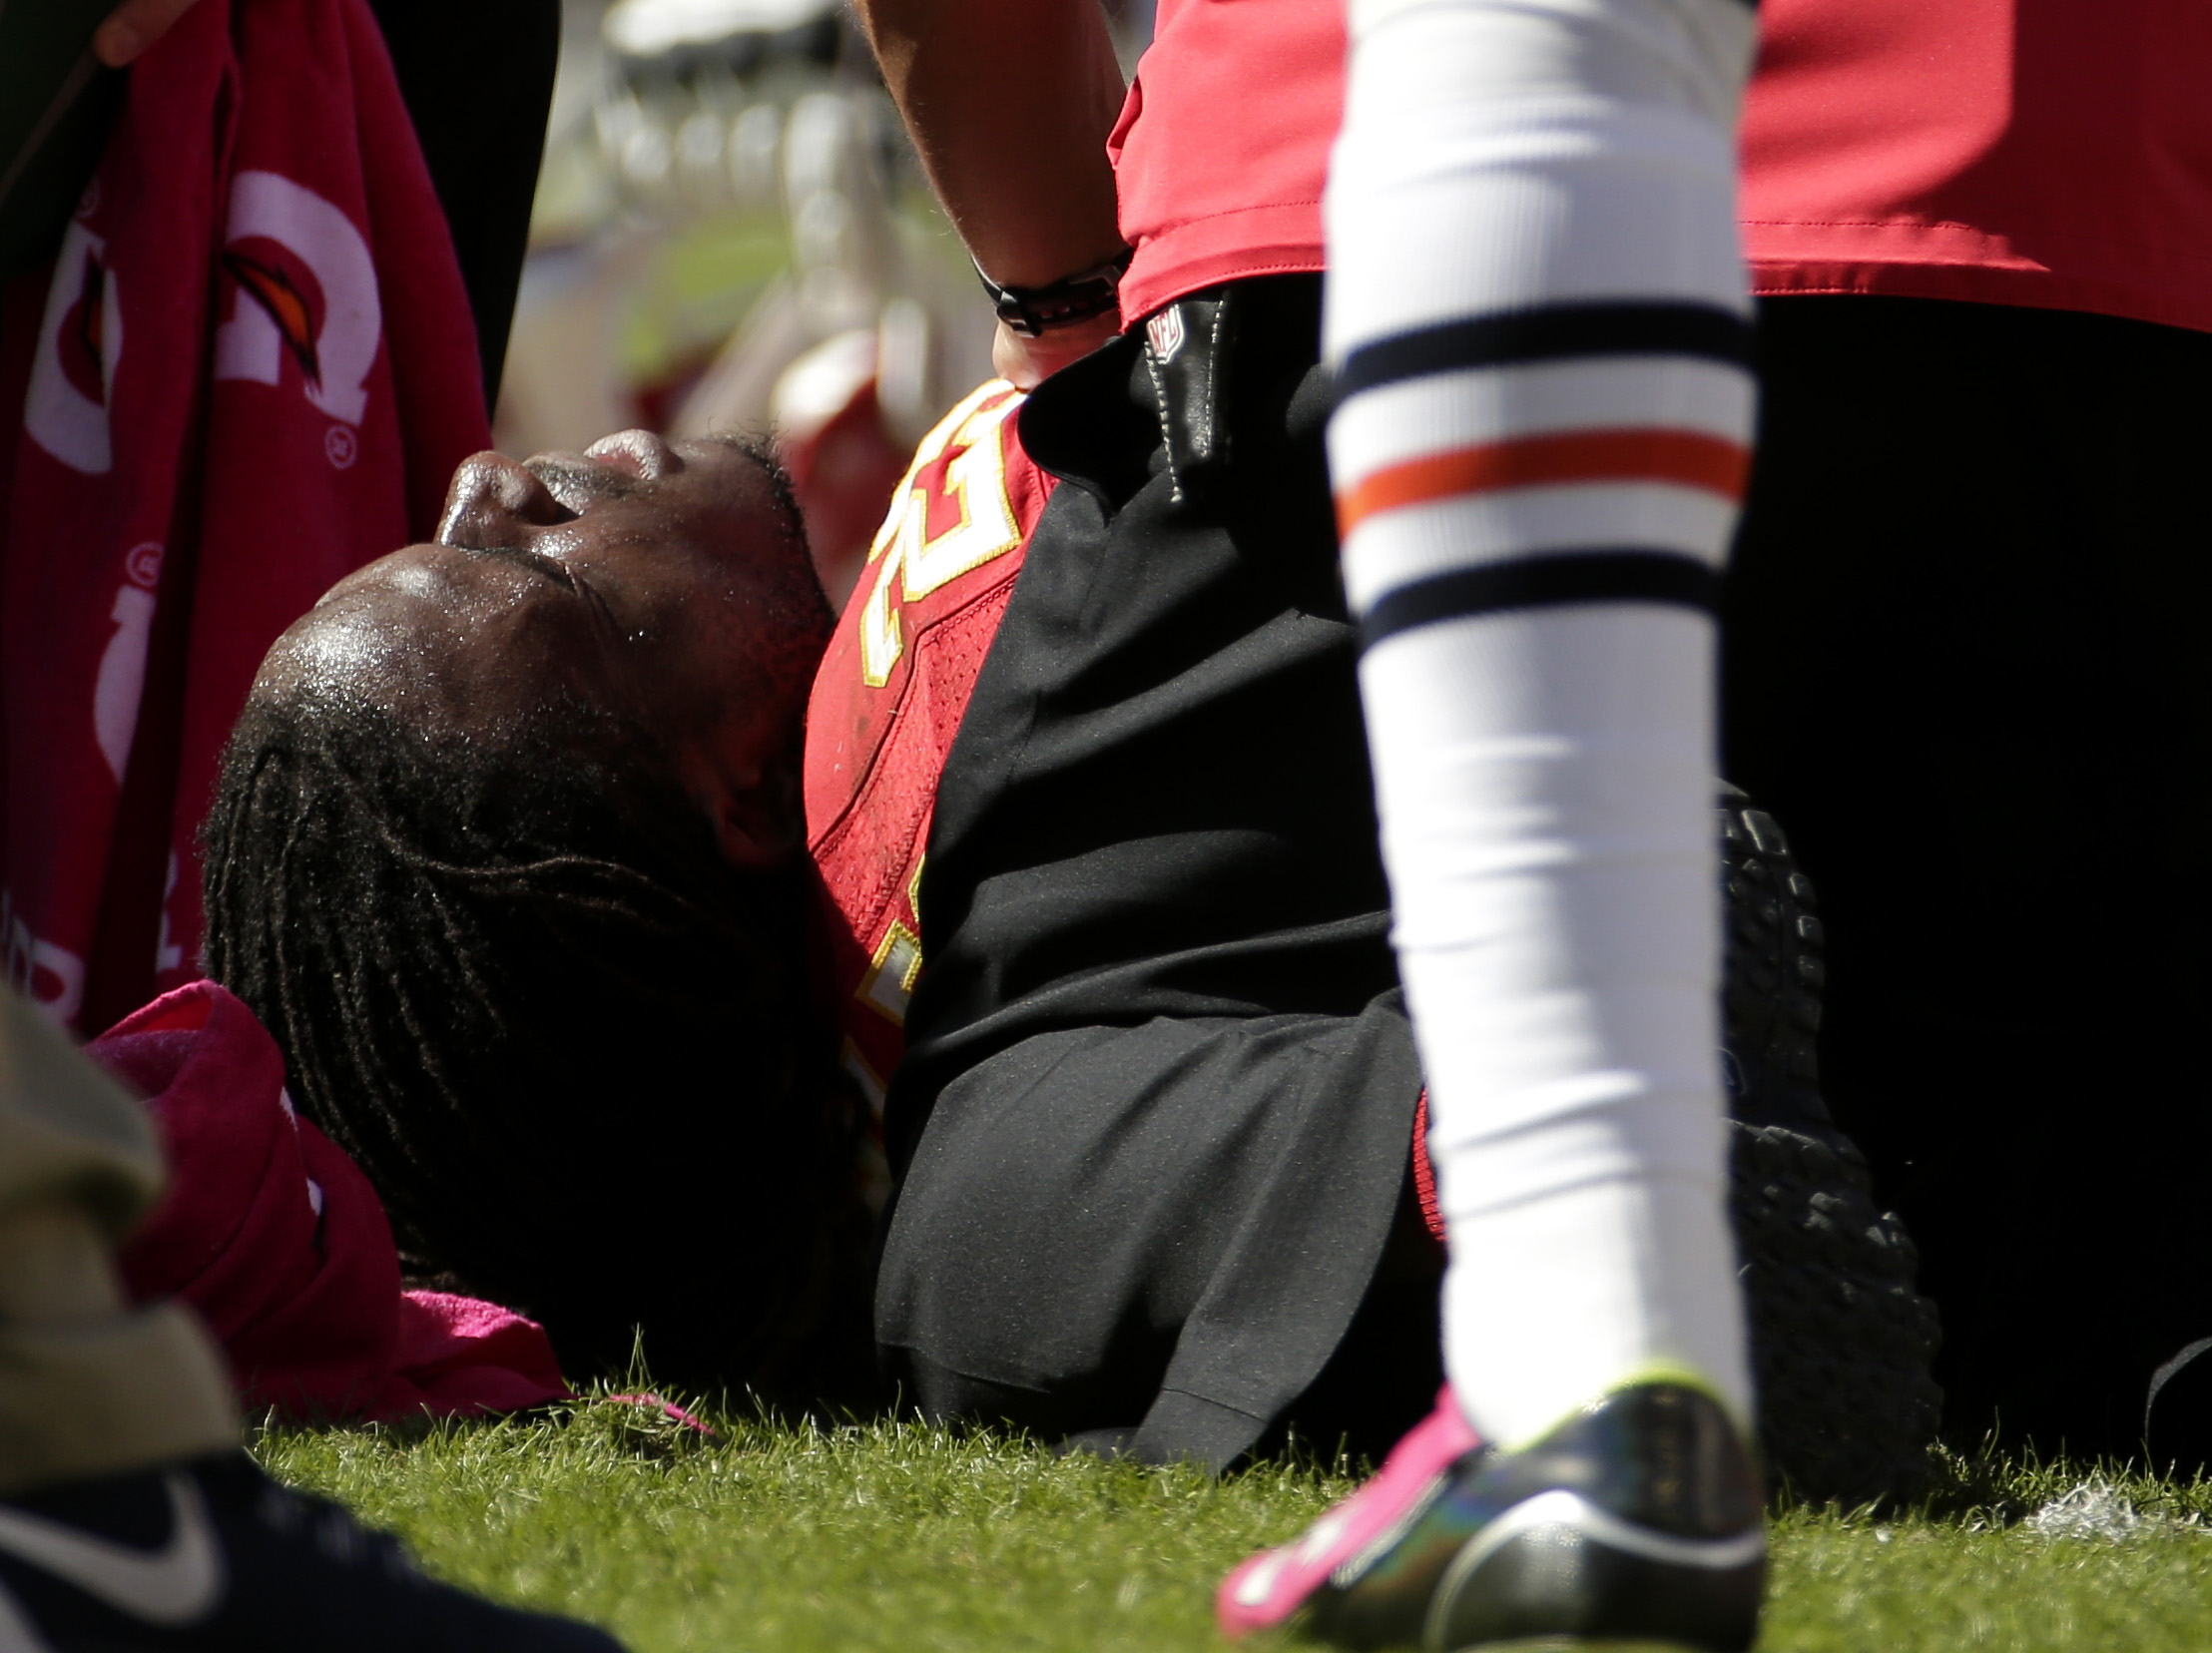 Kansas City Chiefs running back Jamaal Charles (25) lies injured on the field during the second half of an NFL football game against the Chicago Bears in Kansas City, Mo., Sunday, Oct. 11, 2015. (AP Photo/Charlie Riedel)